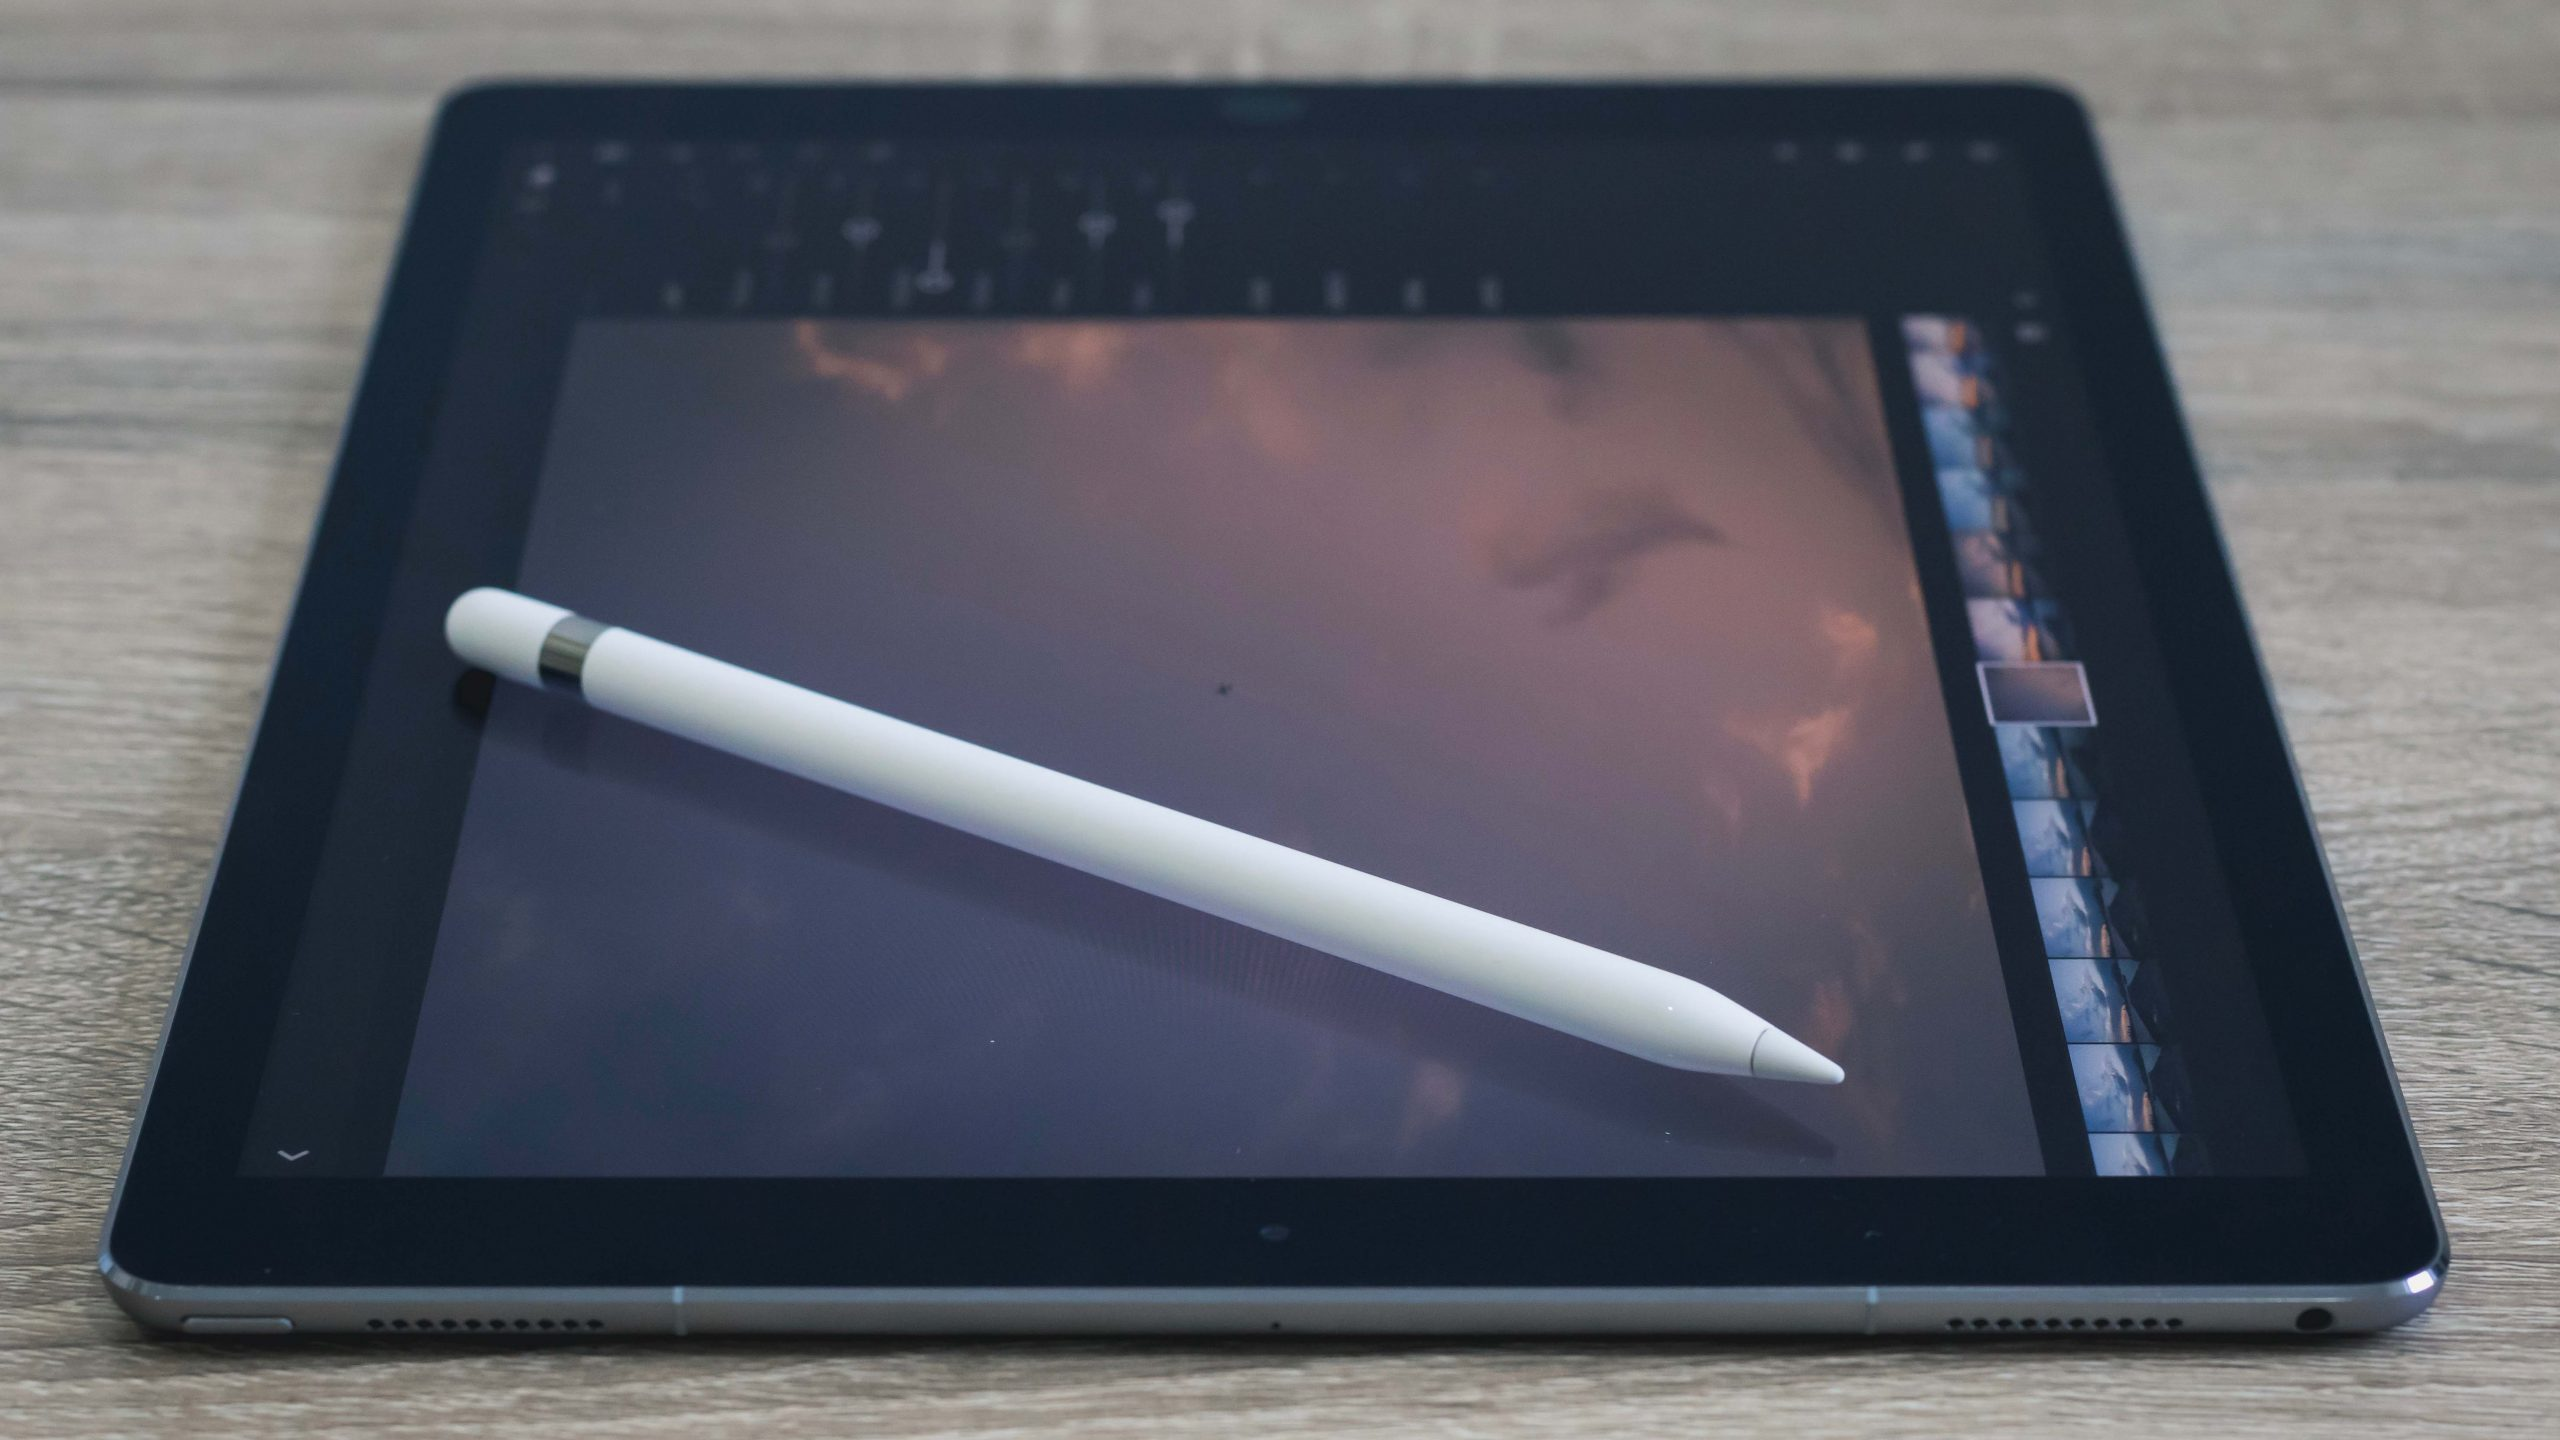 white ipad stylus lying on an ipad